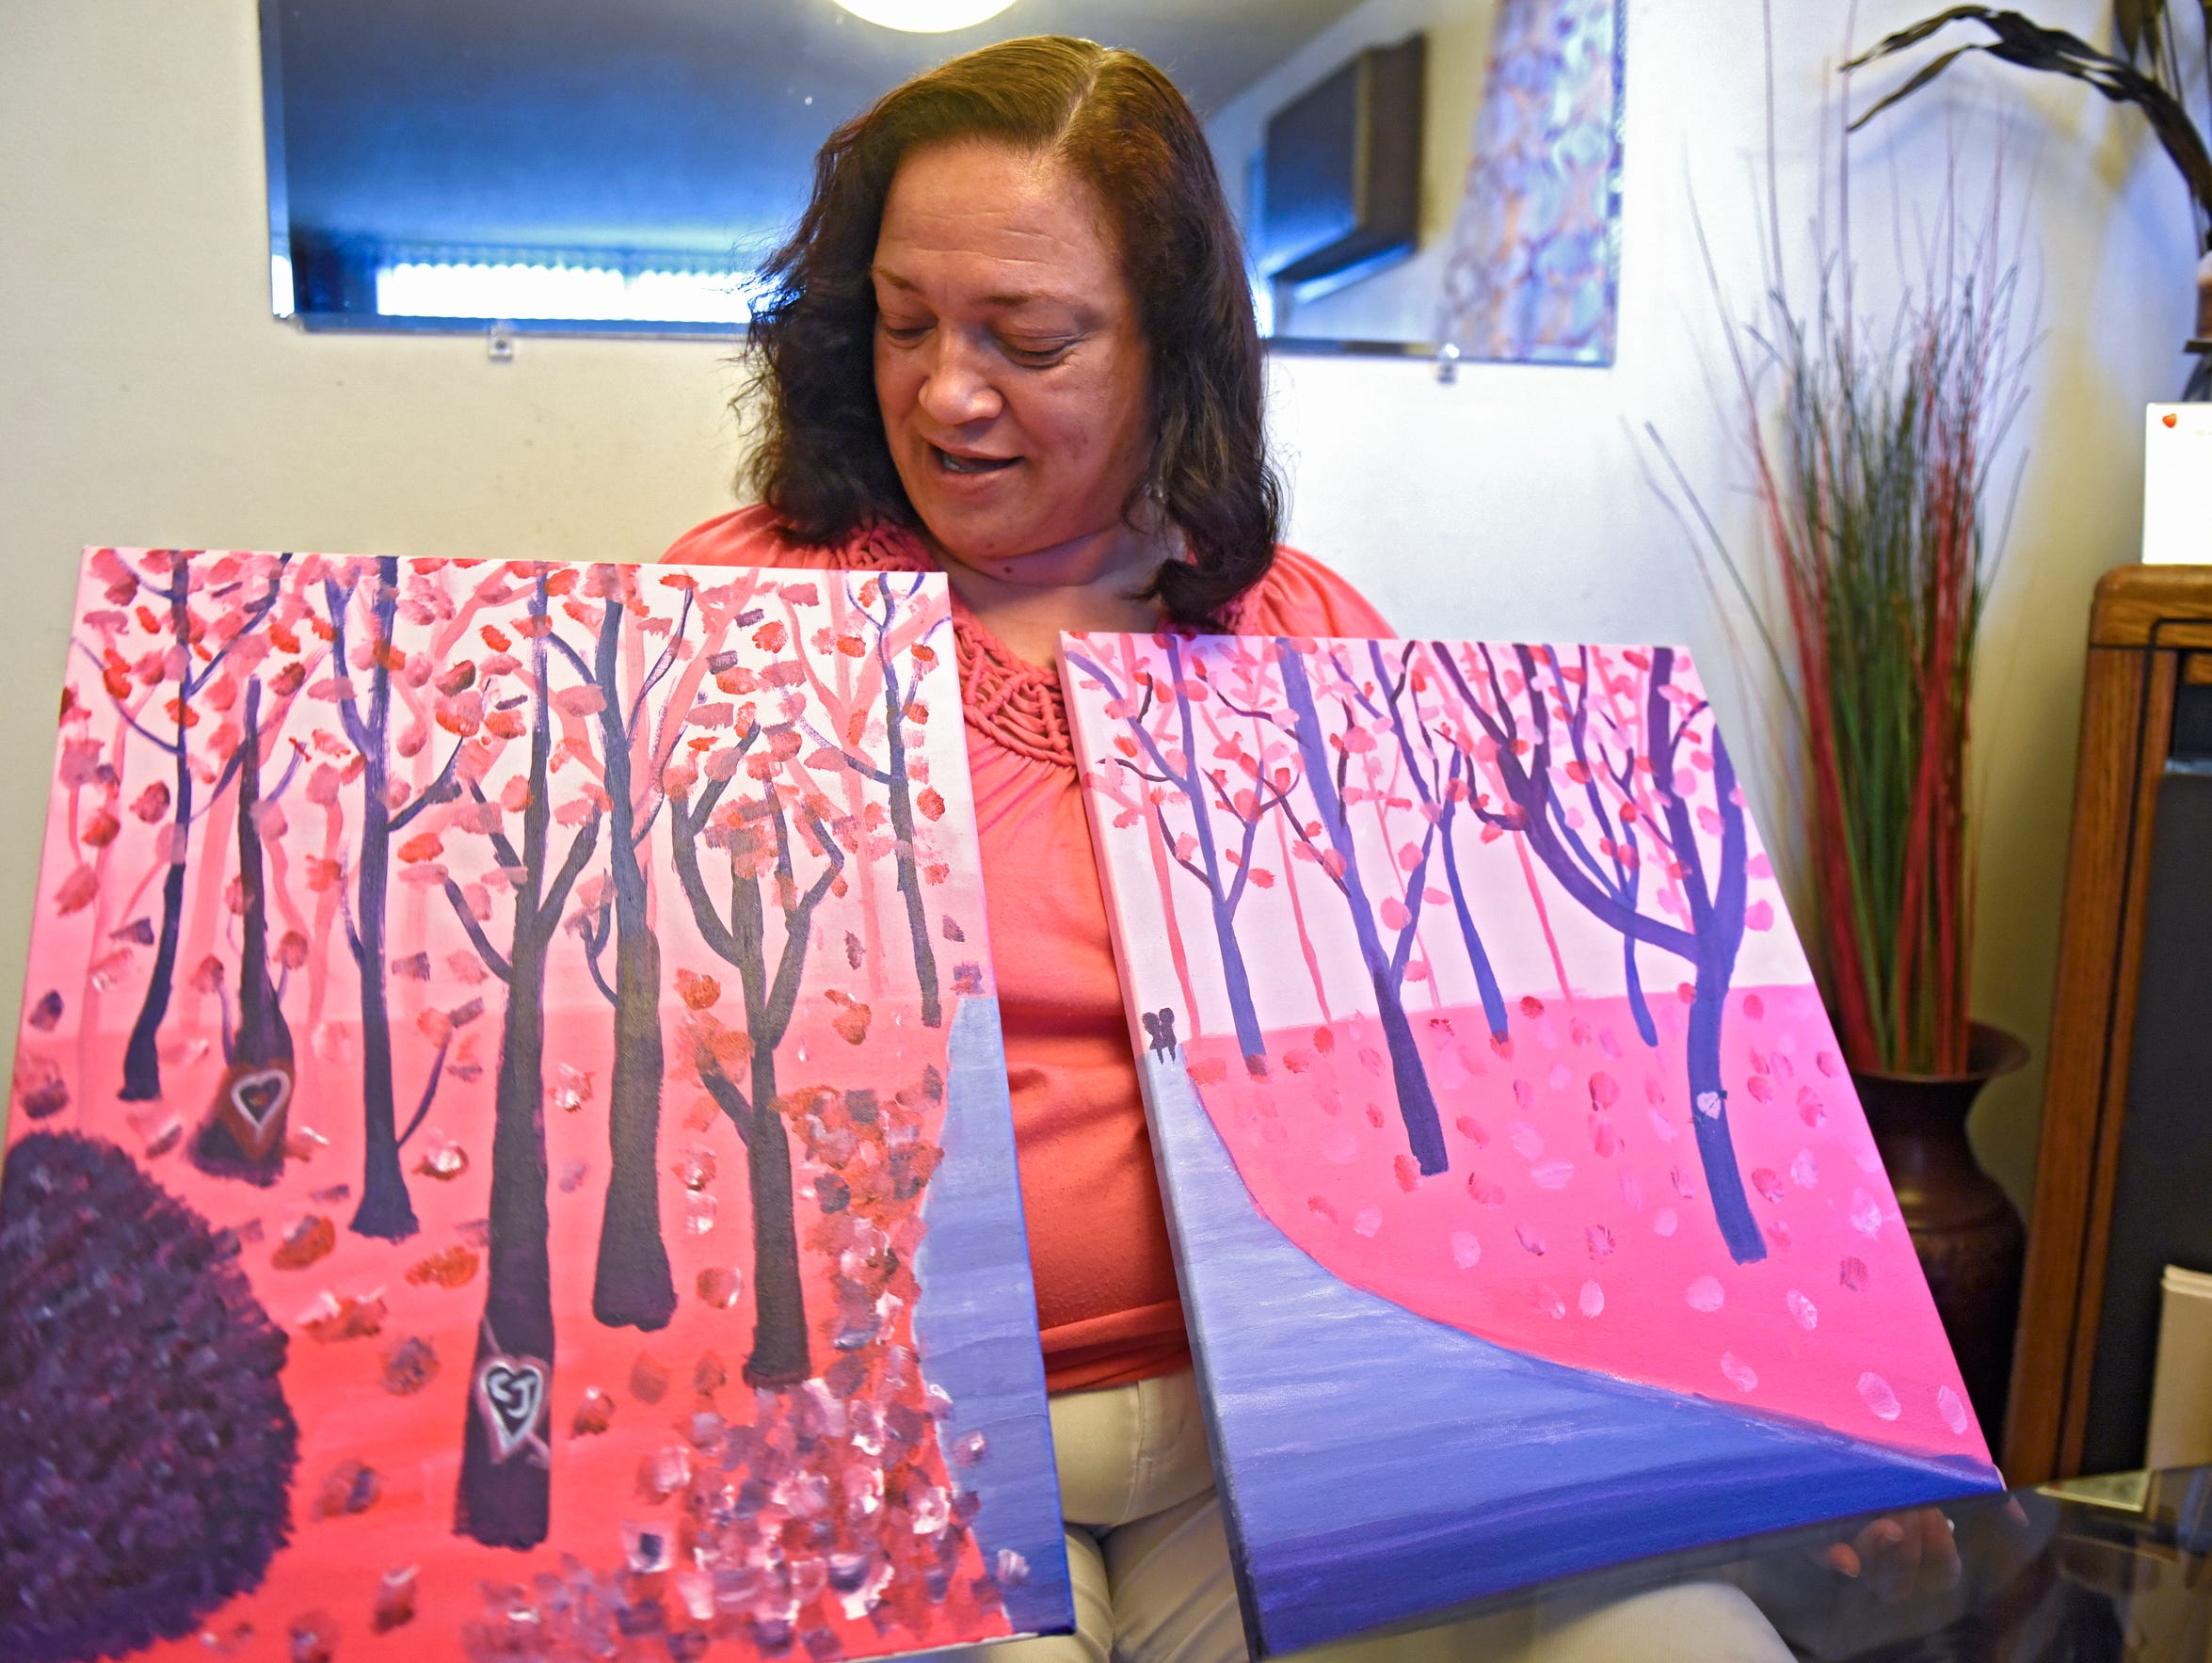 Joy Friedman holds paintings she created with her daughter.